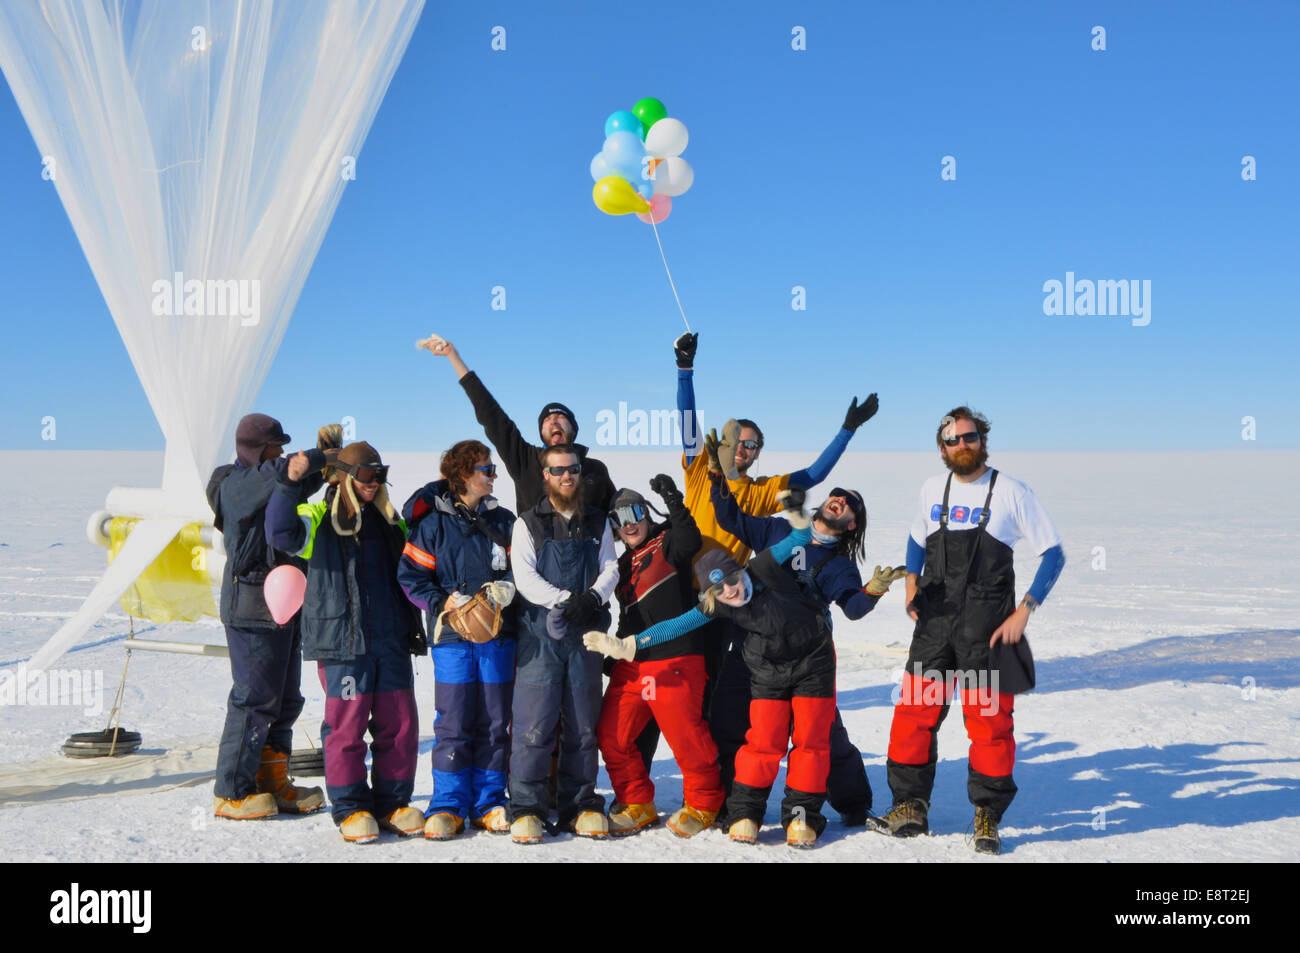 The BARREL team at the SANAE IV research station celebrates their final launch in the Antarctica sun. - Stock Image